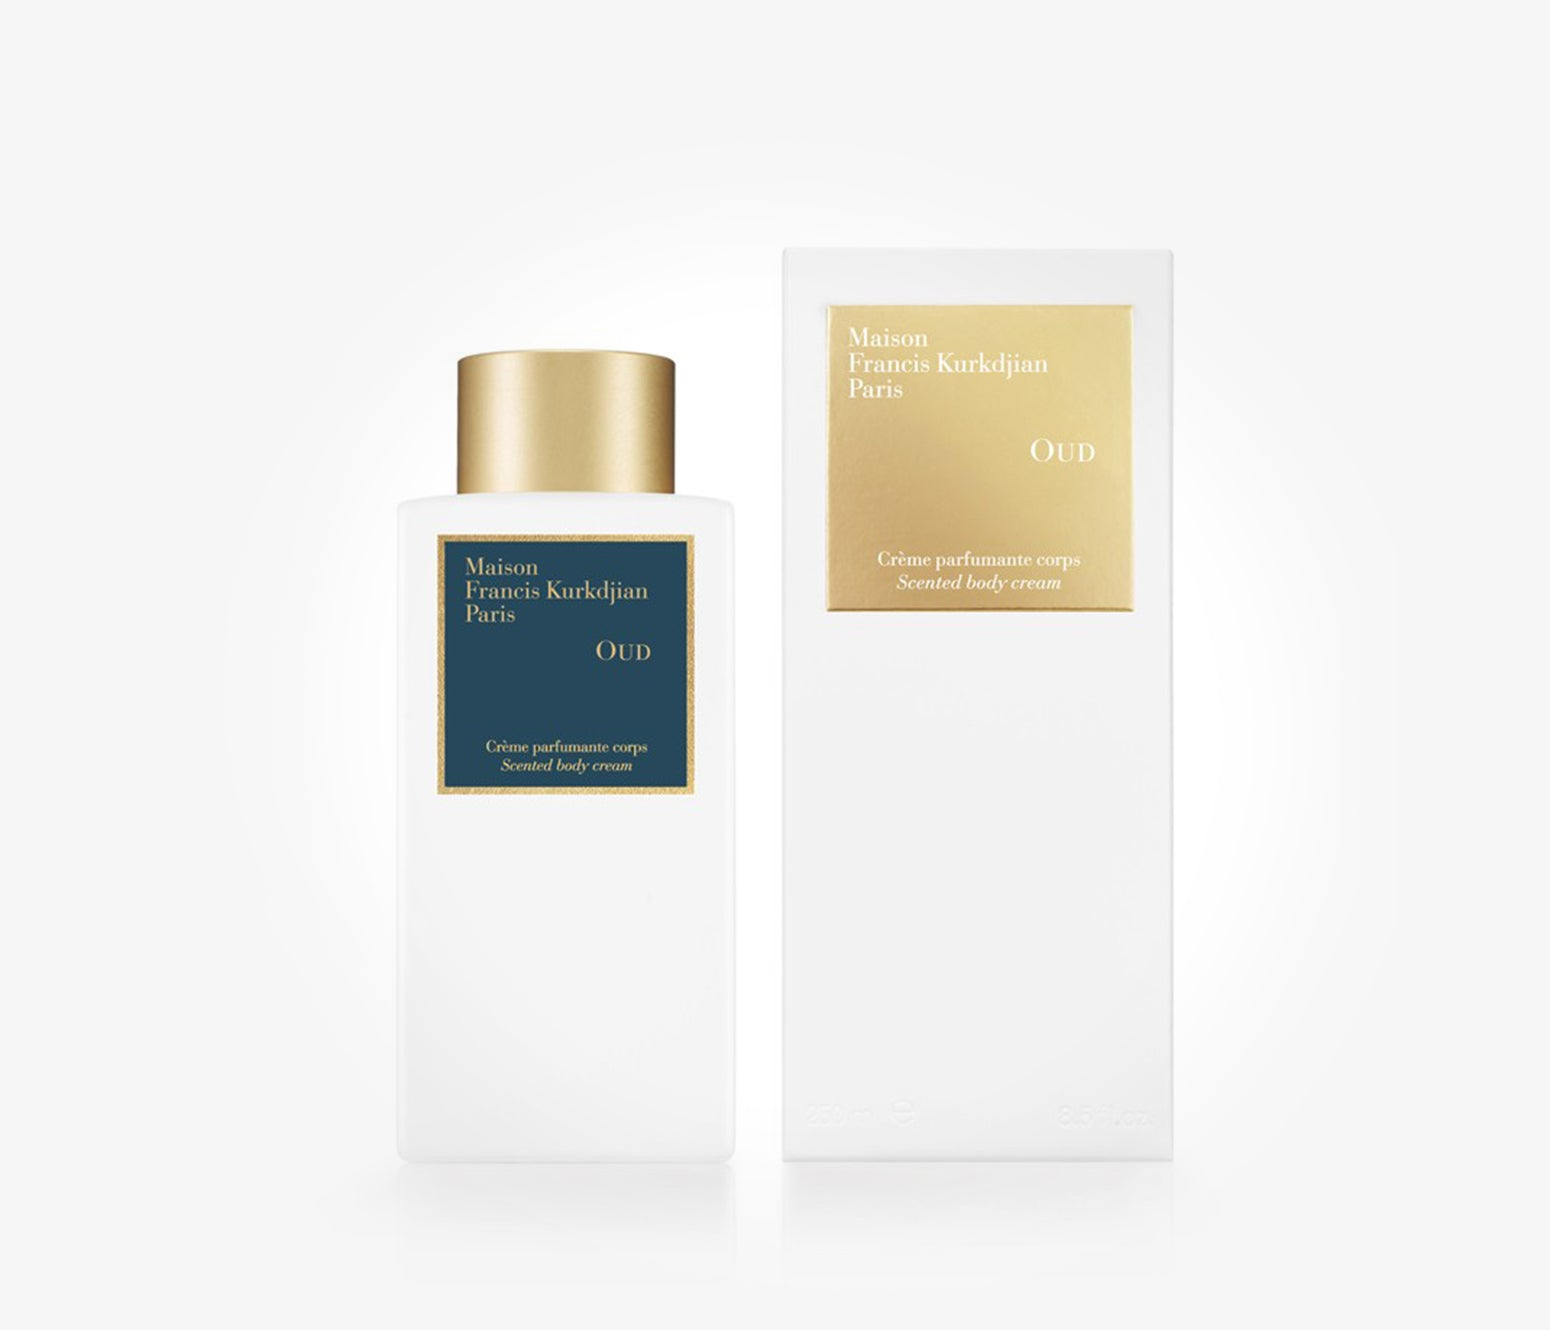 Maison Francis Kurkdjian - Oud Scented Body Cream - 250ml - YZX8794 - product image - Body Cream - Les Senteurs